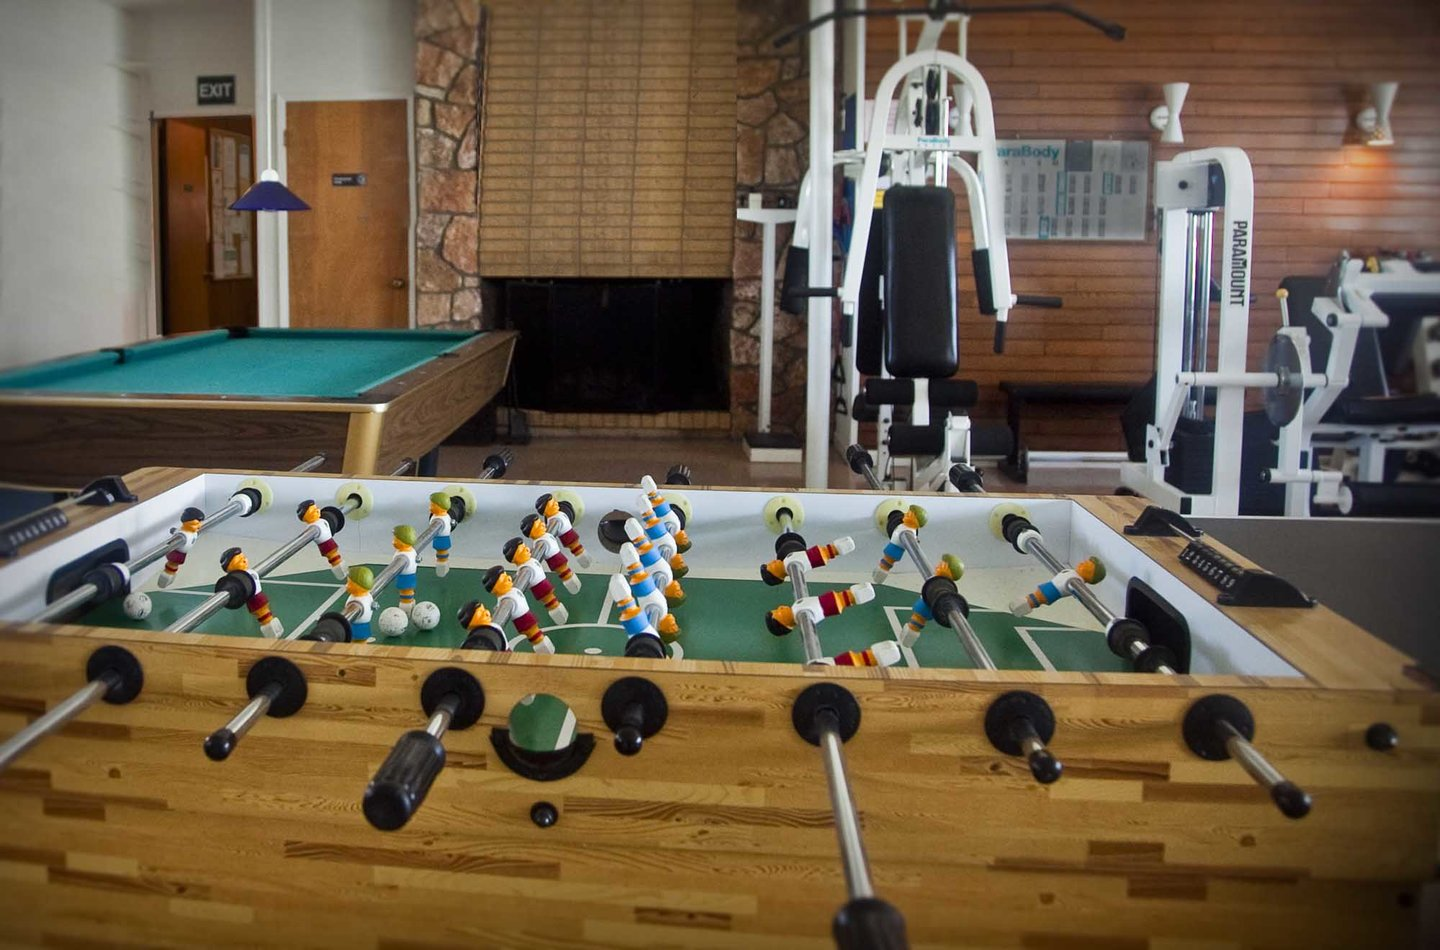 Bayshore Club game room and workout room. The Club requires a fee to use.